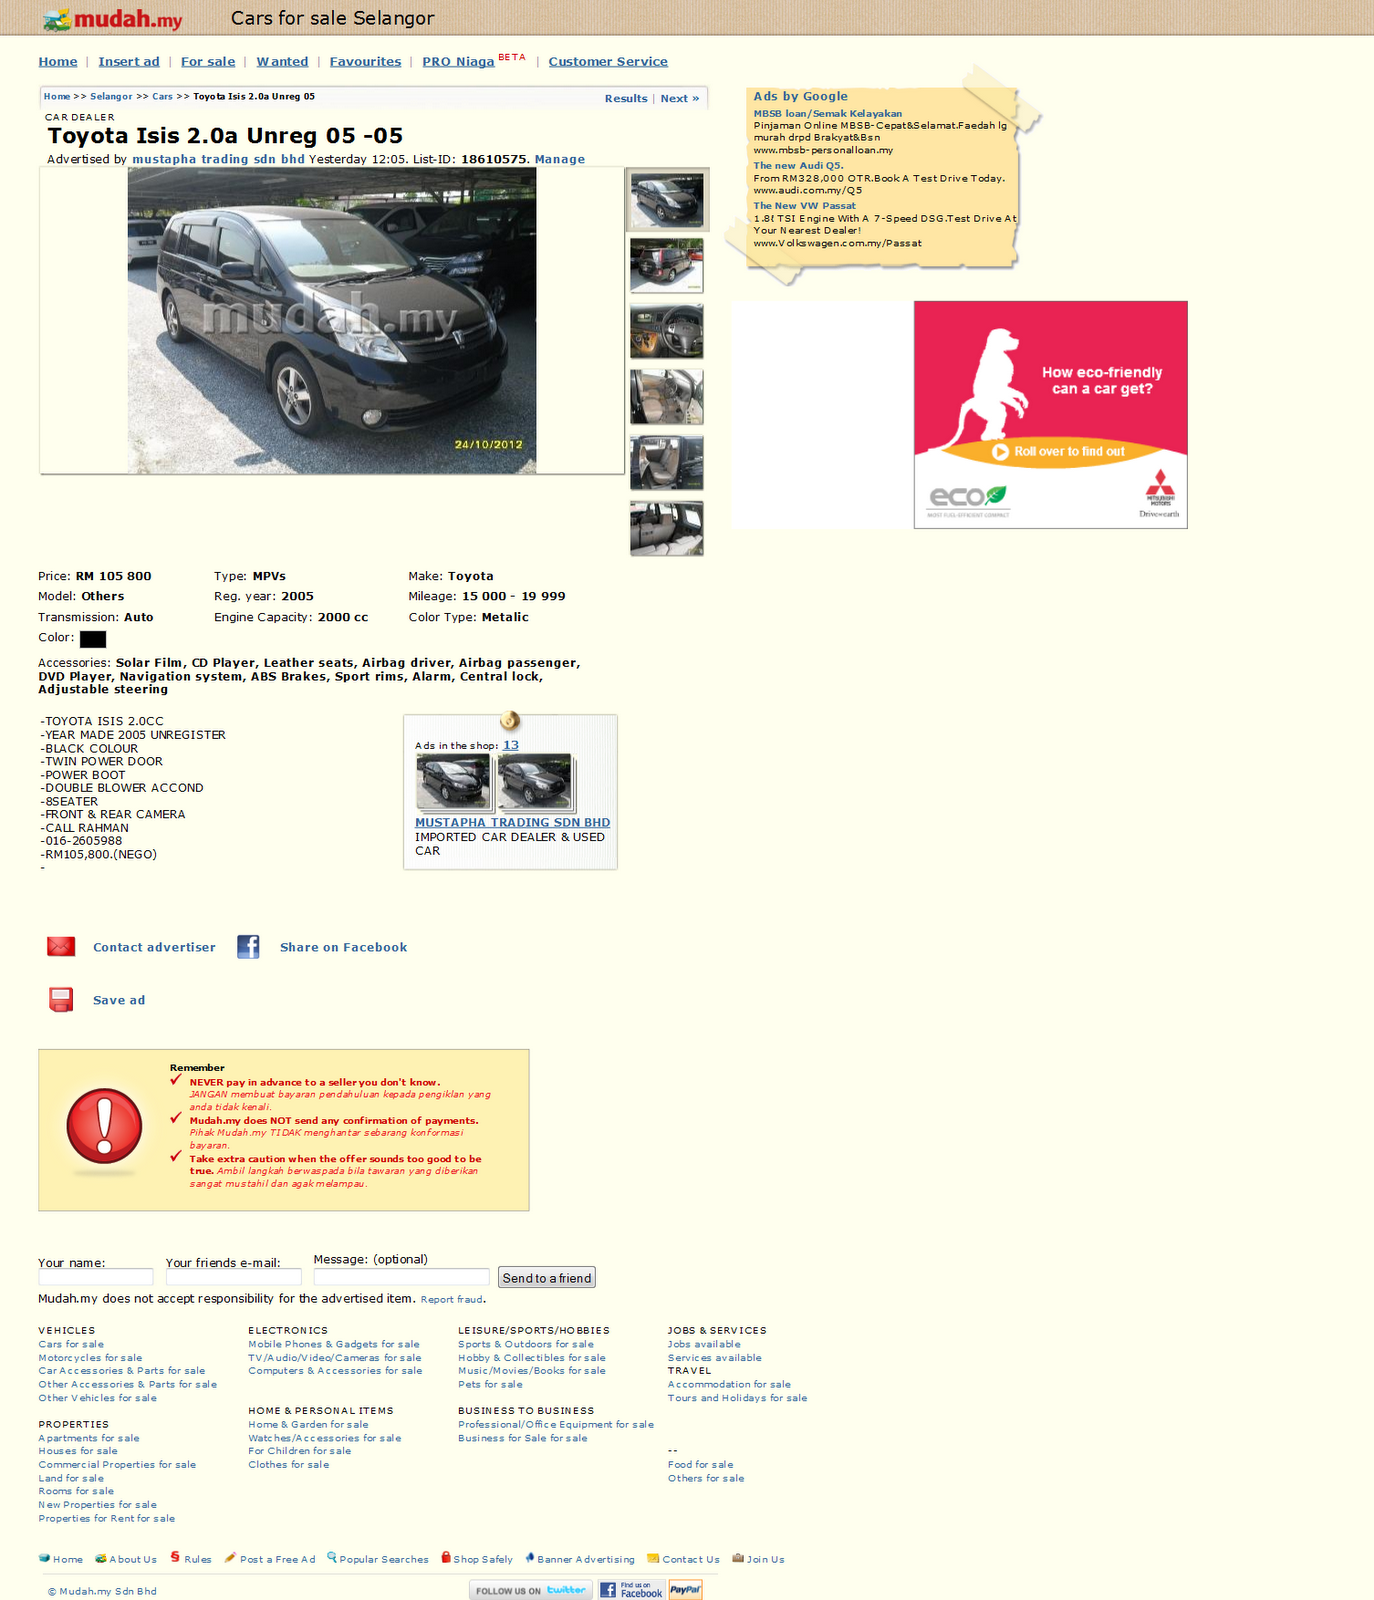 Recently saw an advert on mudah my about the full spec toyota isis u selection this is the highest grade isis offer by toyota double blower and power door